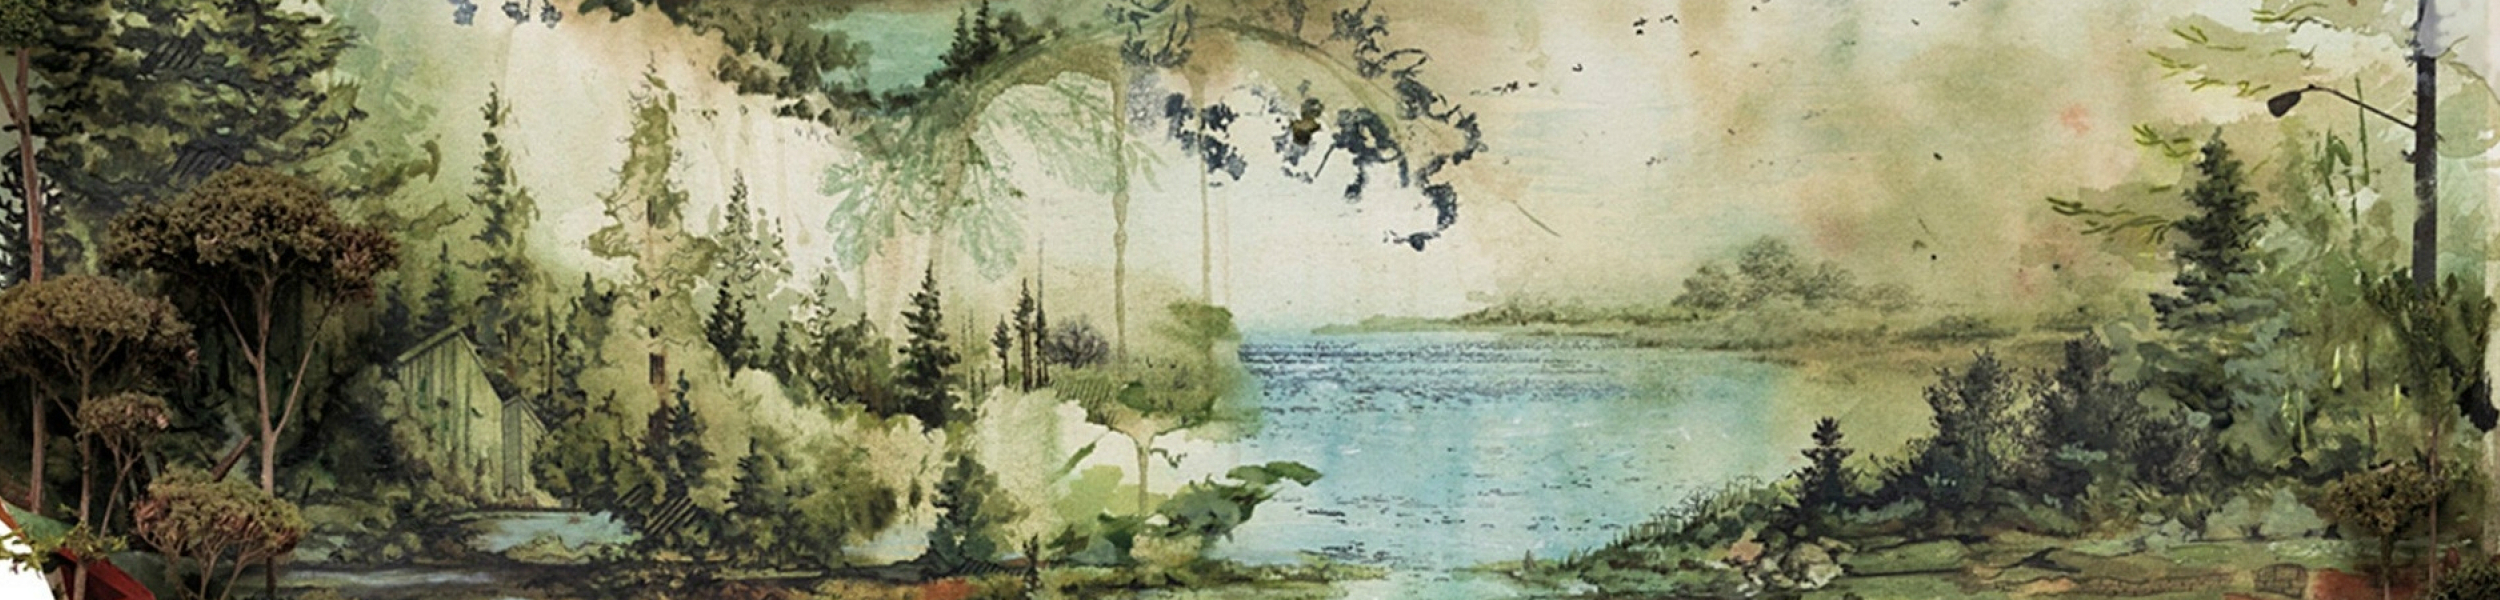 Bon Iver - Watch the Video for Bon Iver's 'Beth/Rest' at The Huffington Post